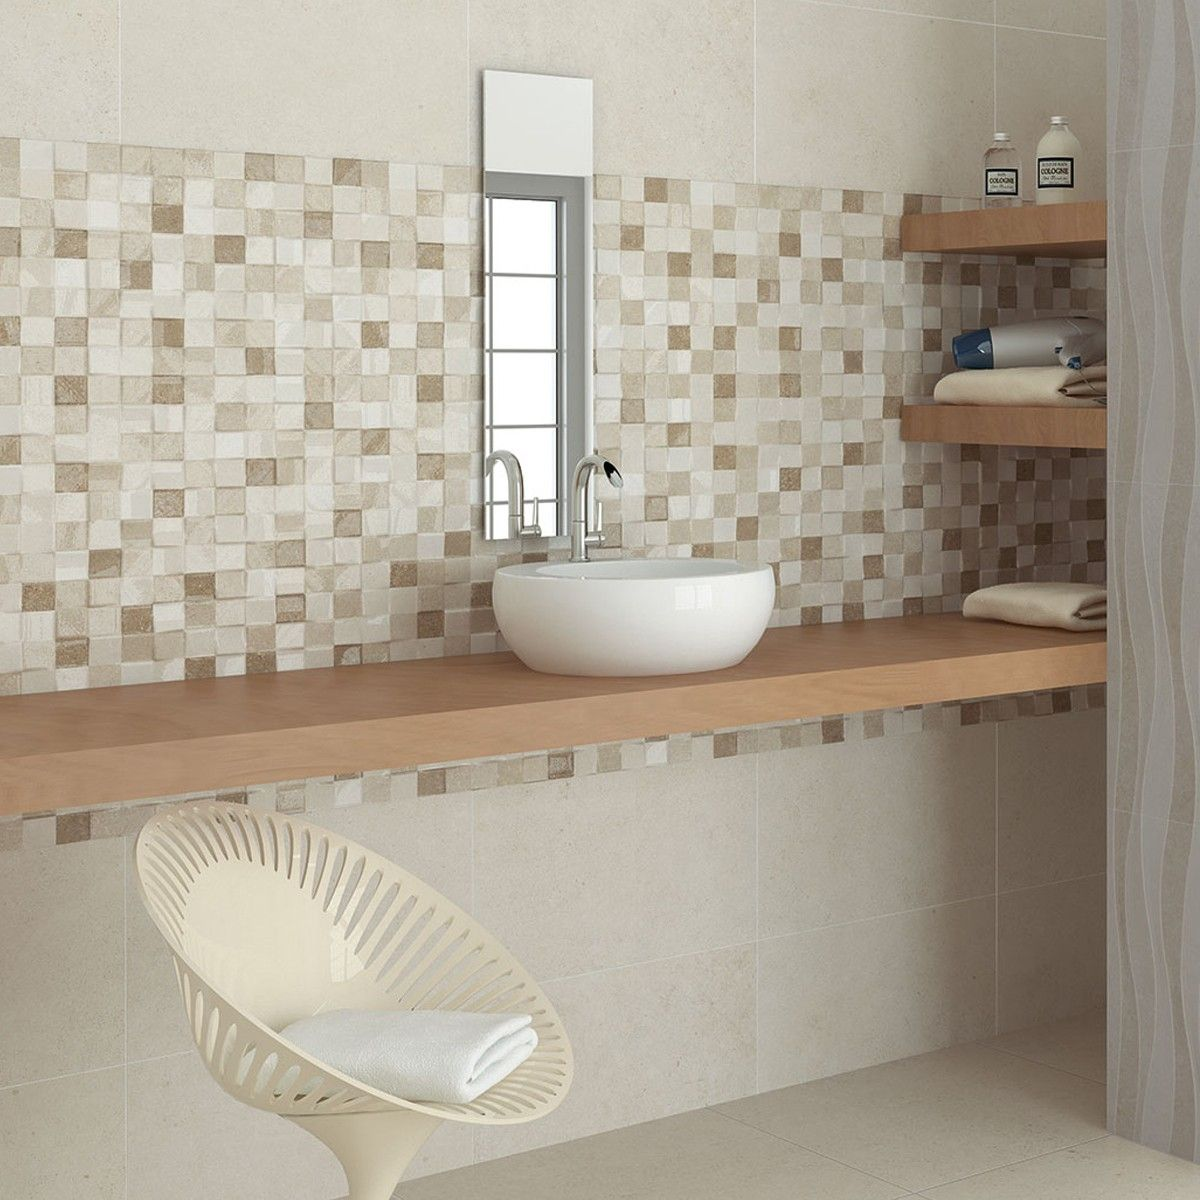 Bathroom mosaic wall tiles